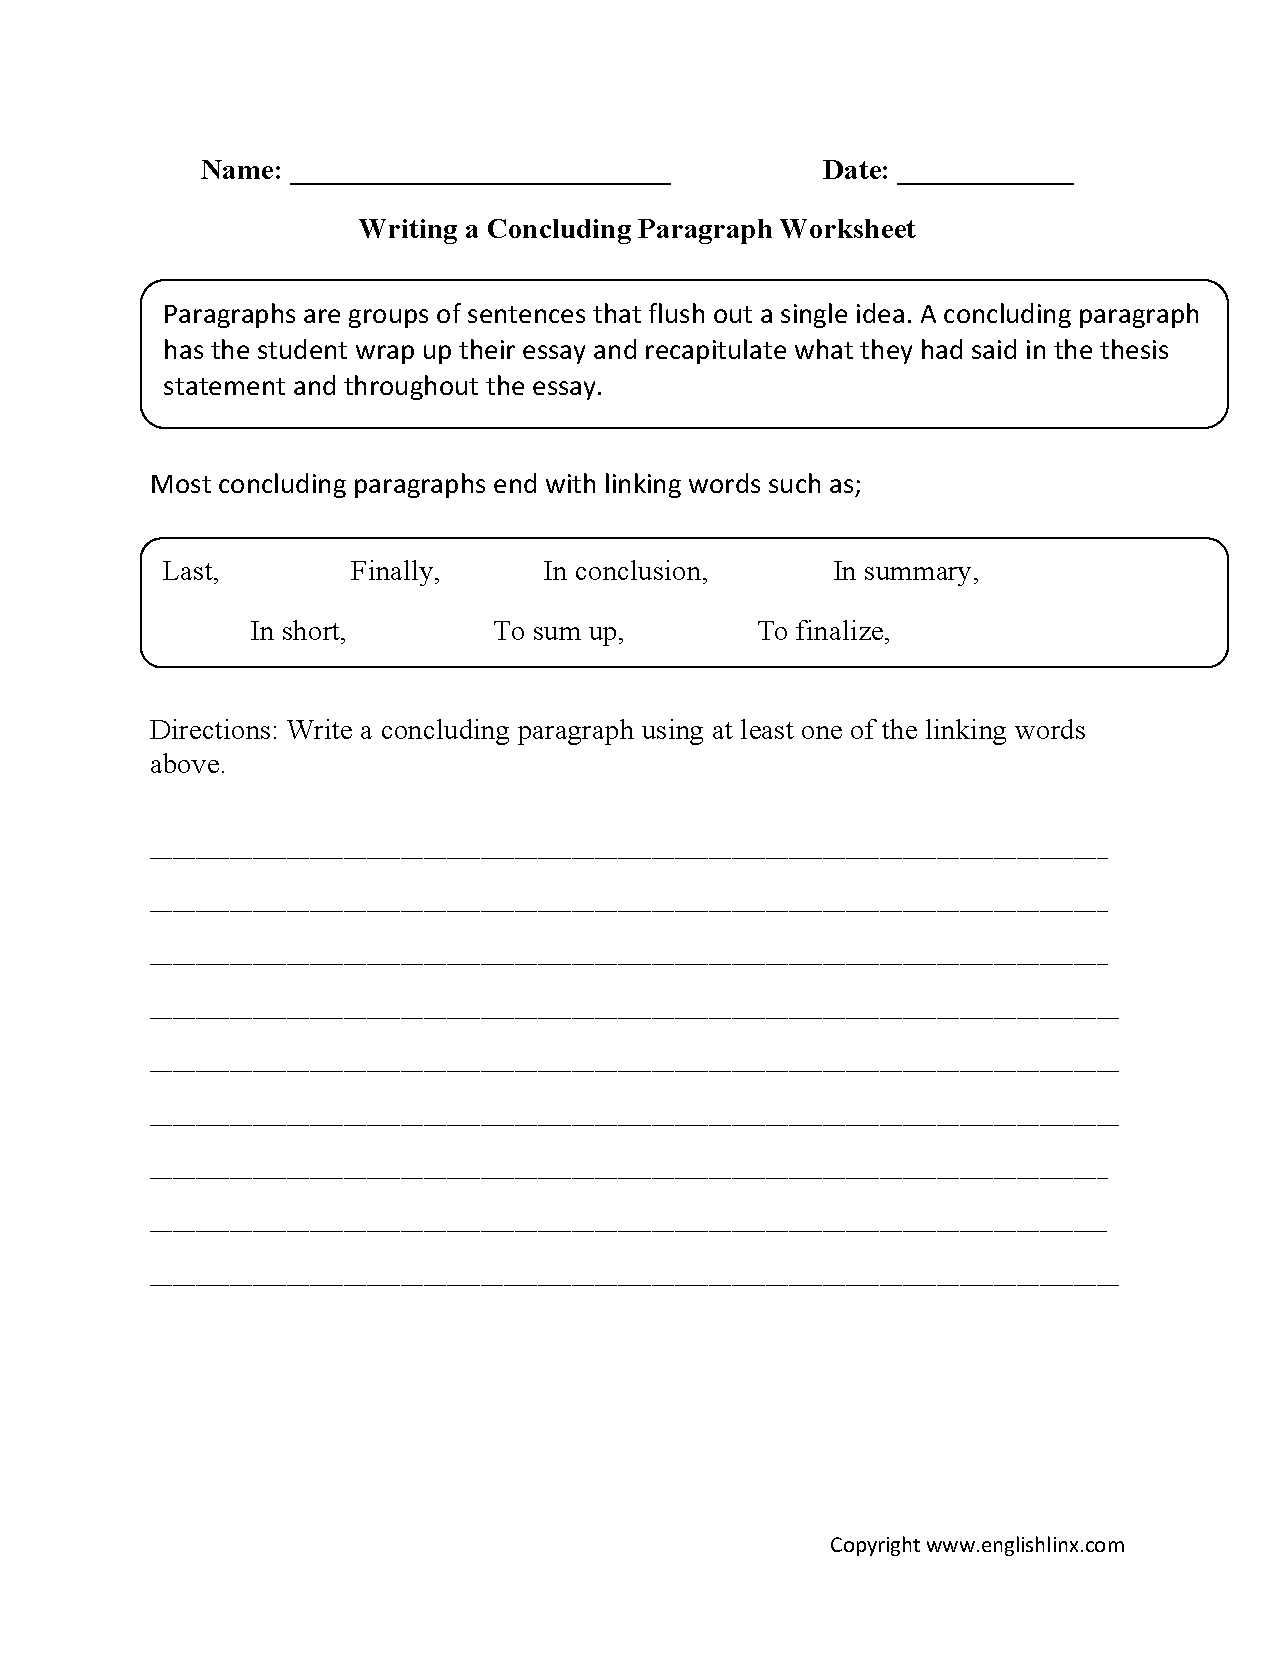 Worksheets Paragraph Writing Worksheets writing worksheets paragraph concluding worksheets